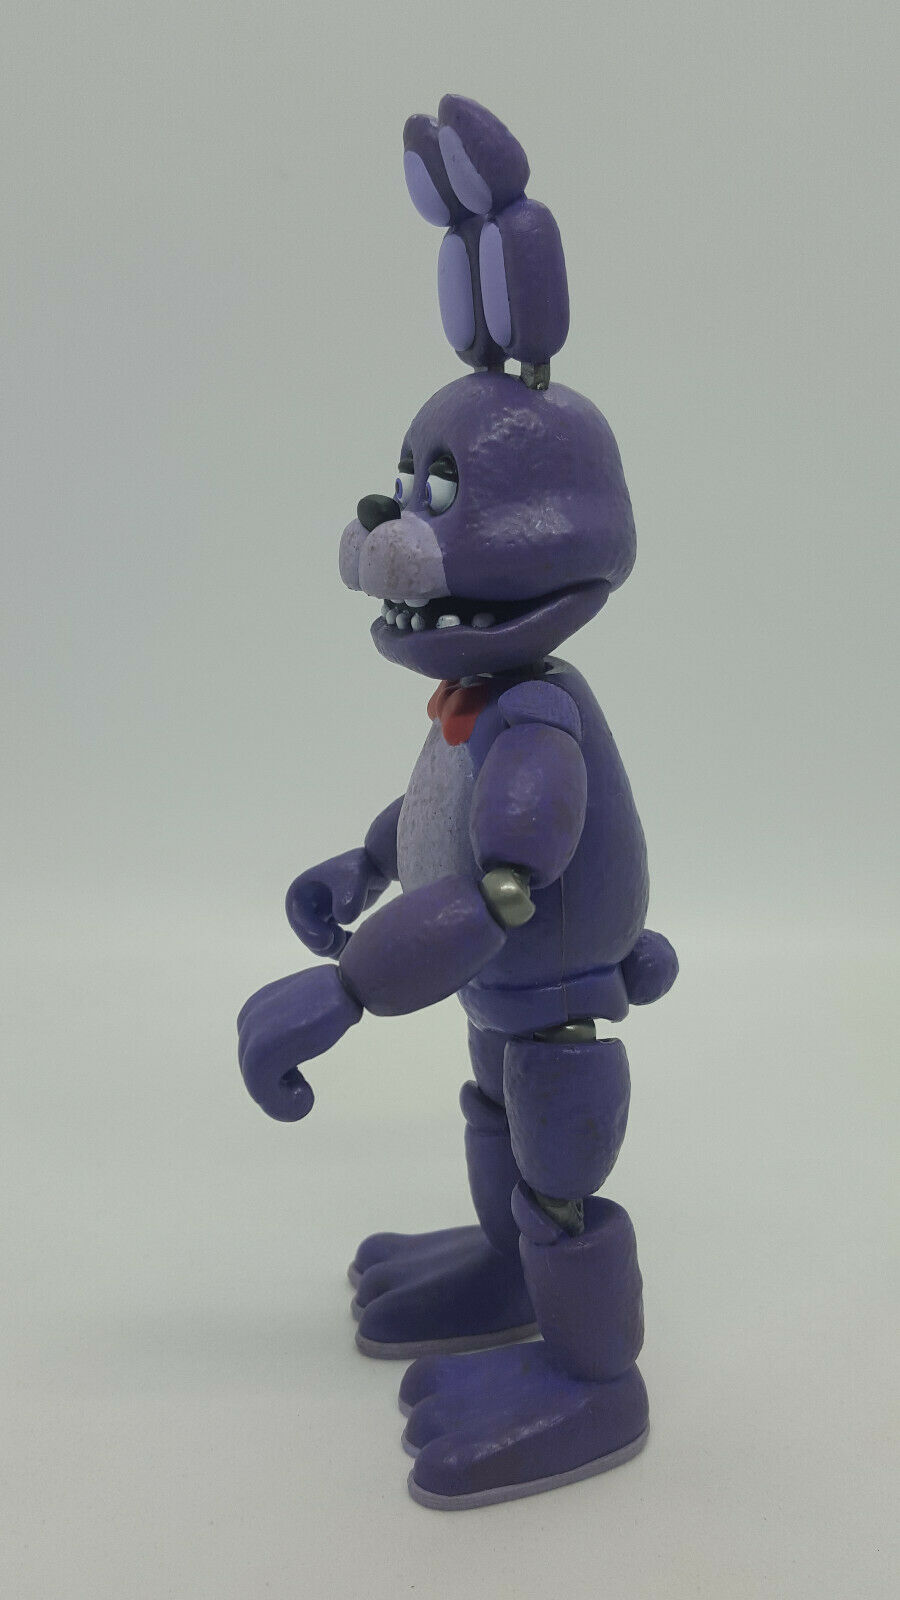 Funko Five Nights At FreddyS Articulated Bonnie Action Figure Item 8849 - $29.99